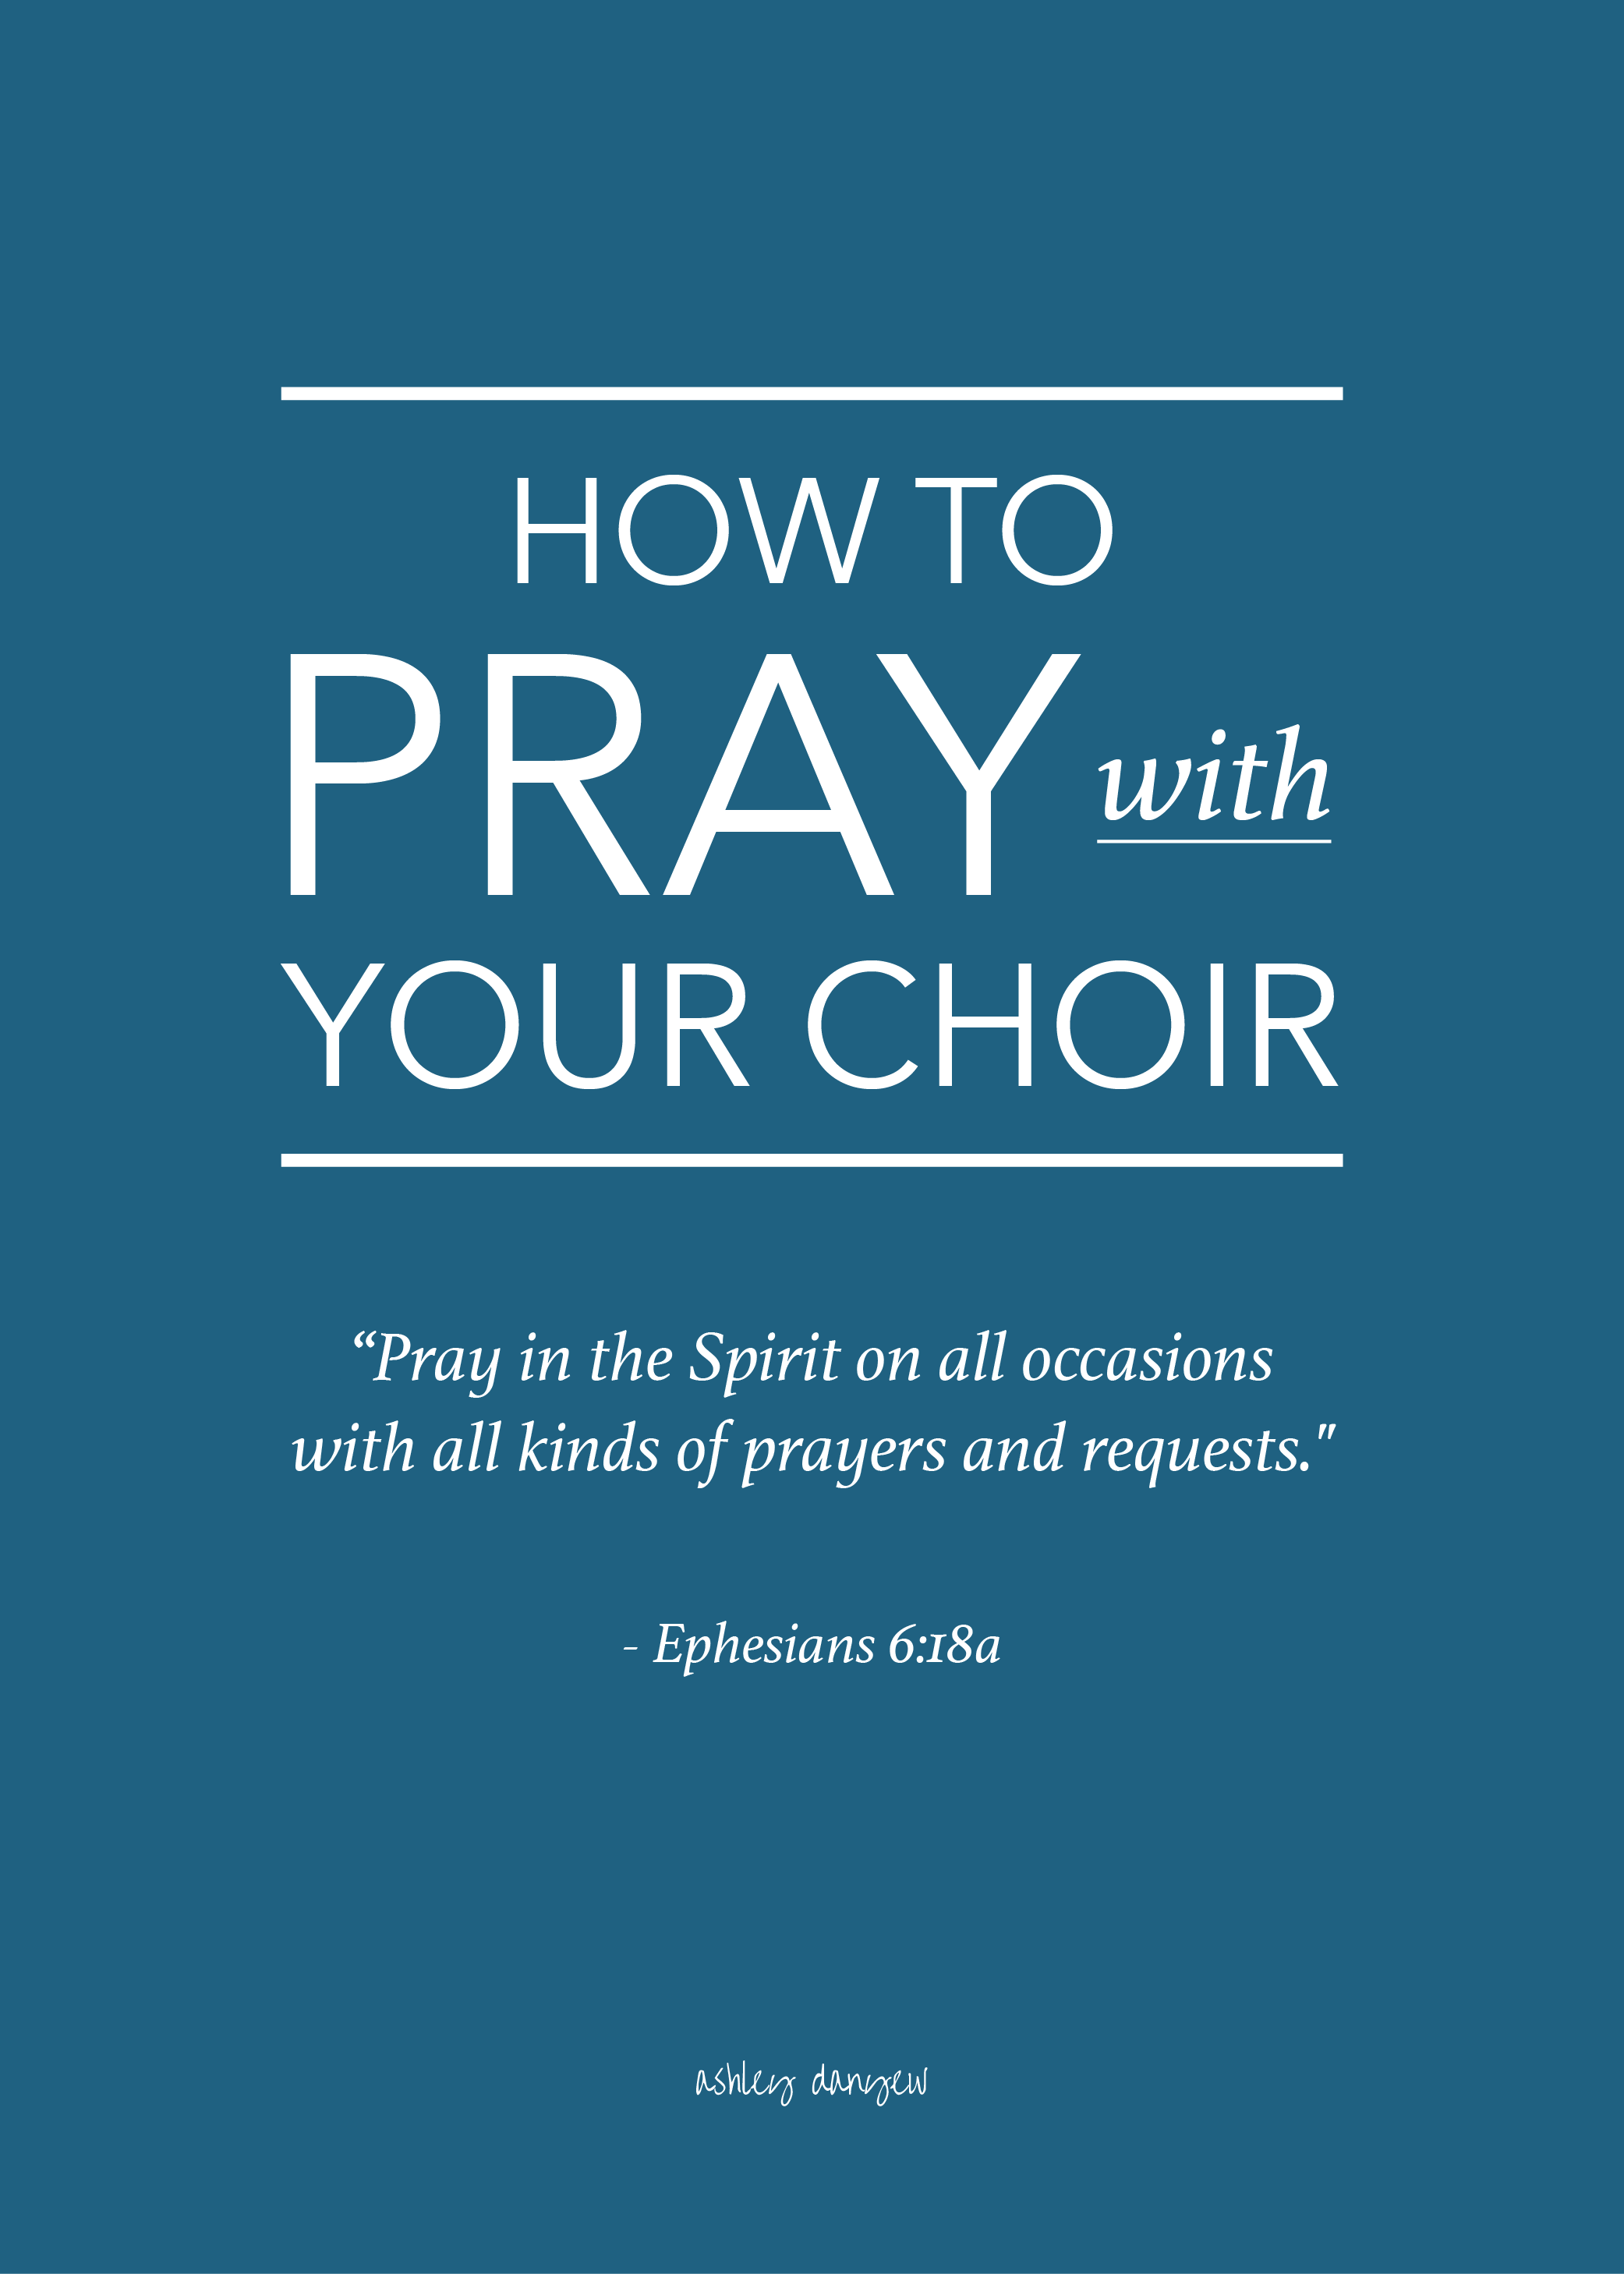 How-to-Pray-with-Your-Choir-01.png